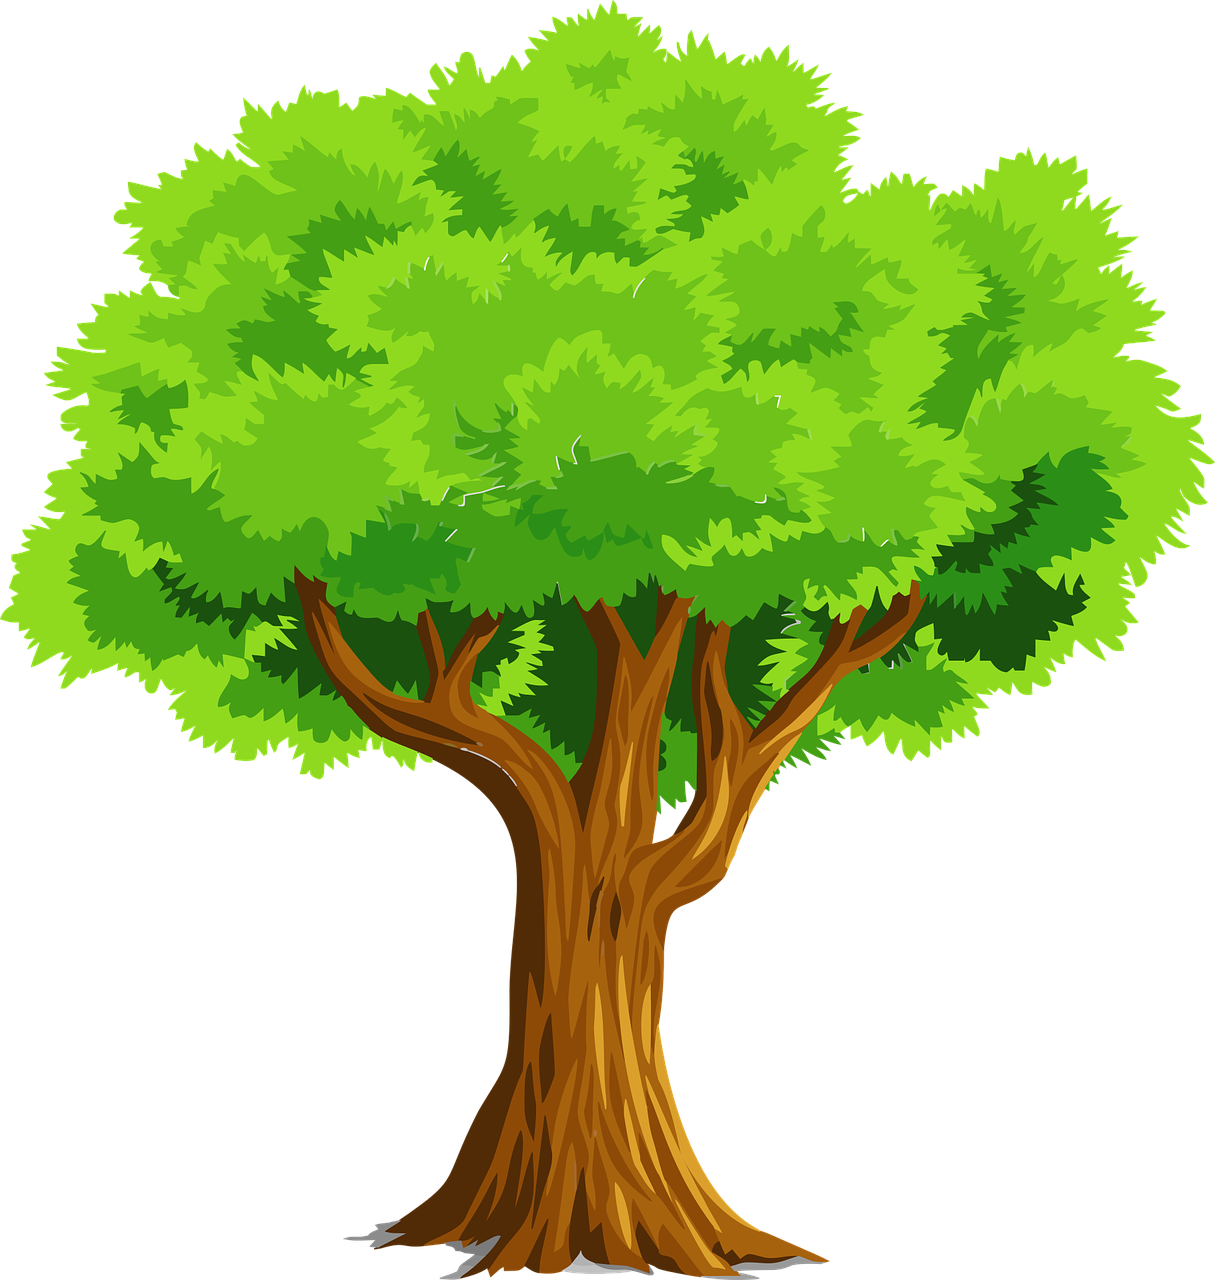 Cartoon Trees Wallpapers Top Free Cartoon Trees Backgrounds Wallpaperaccess Embed this art into your website: cartoon trees wallpapers top free